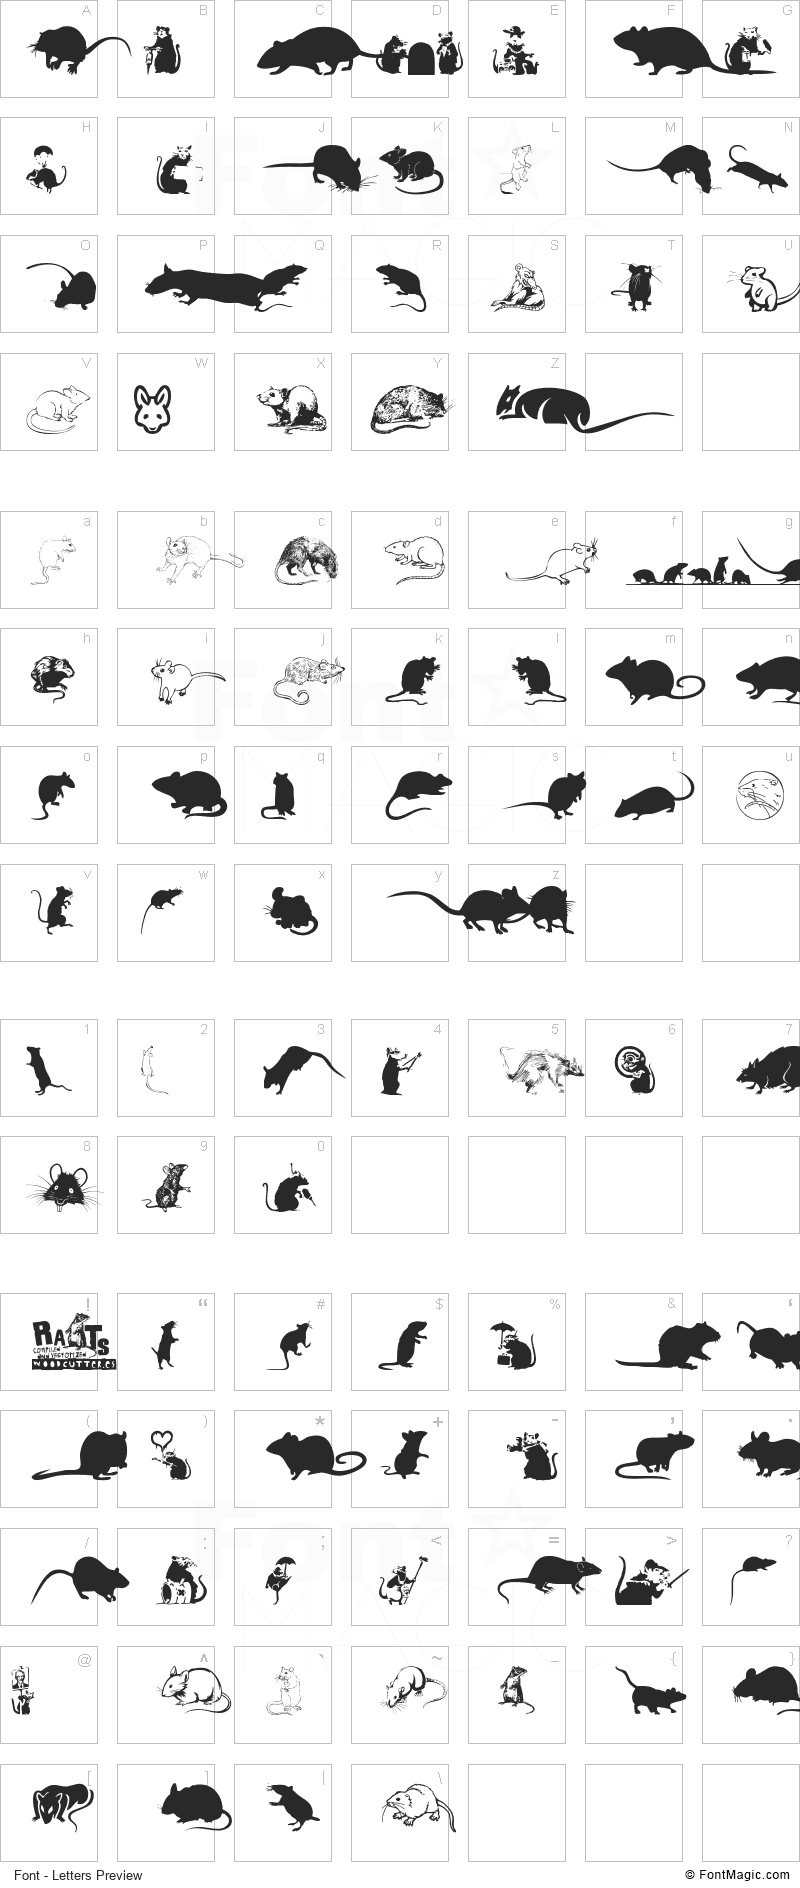 Rats Font - All Latters Preview Chart